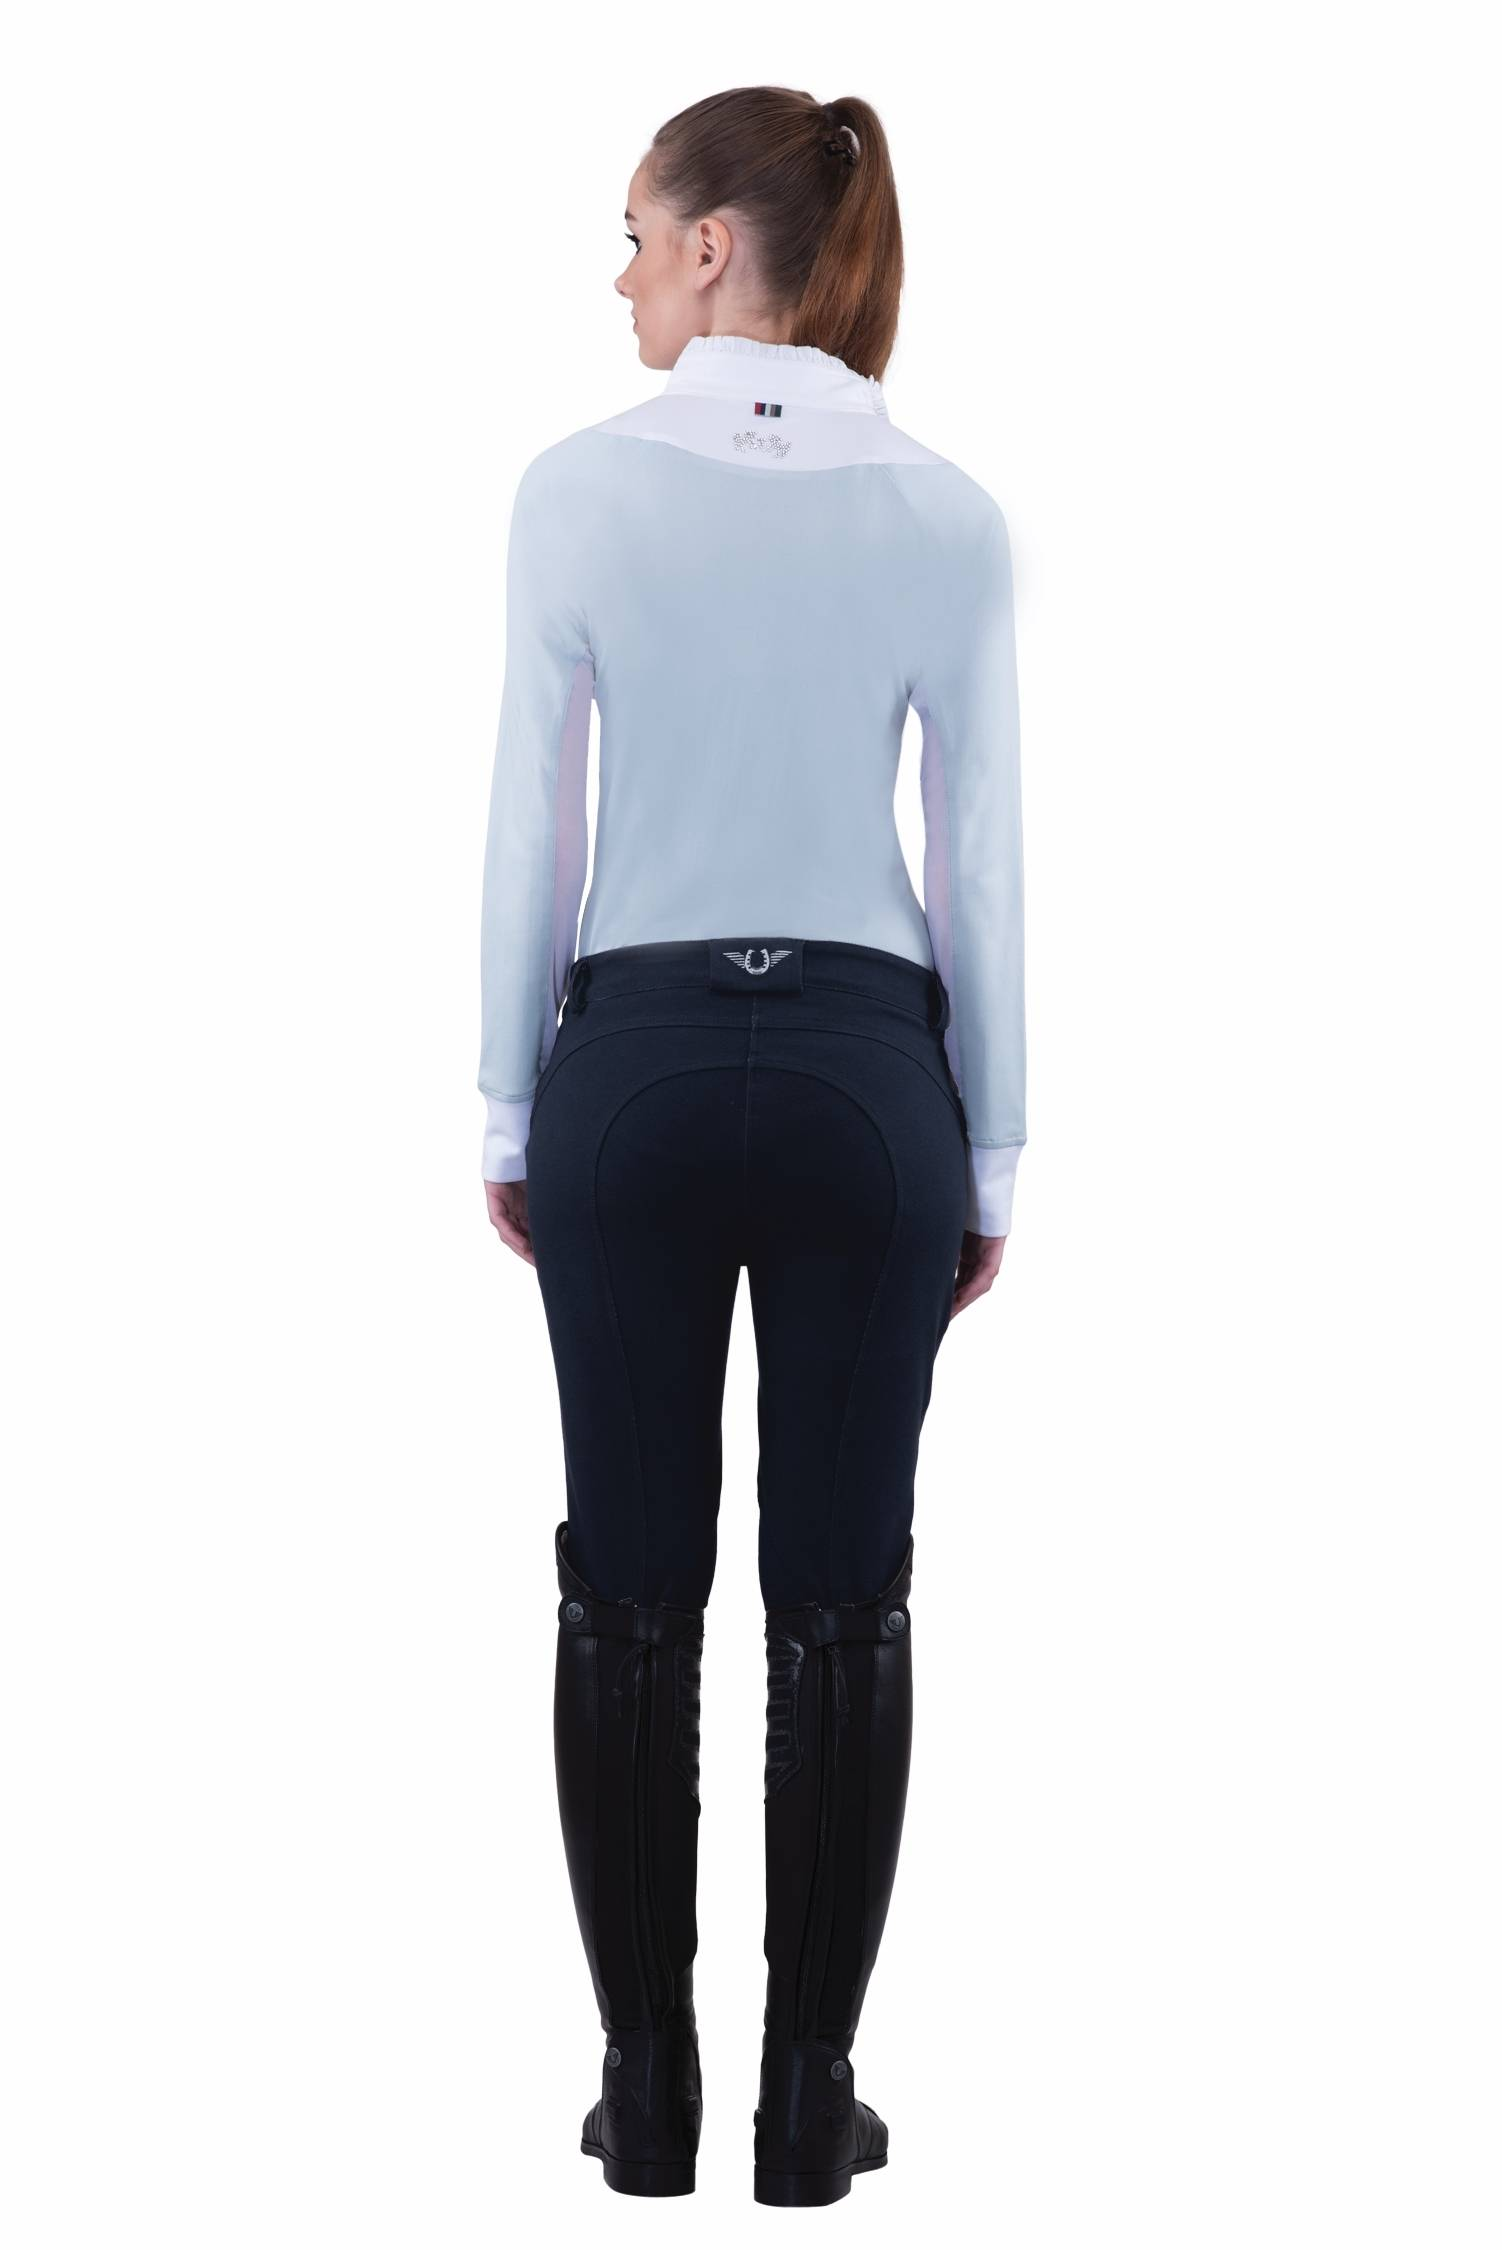 Tuffrider Active Breeches- Ladies, Knee Patch